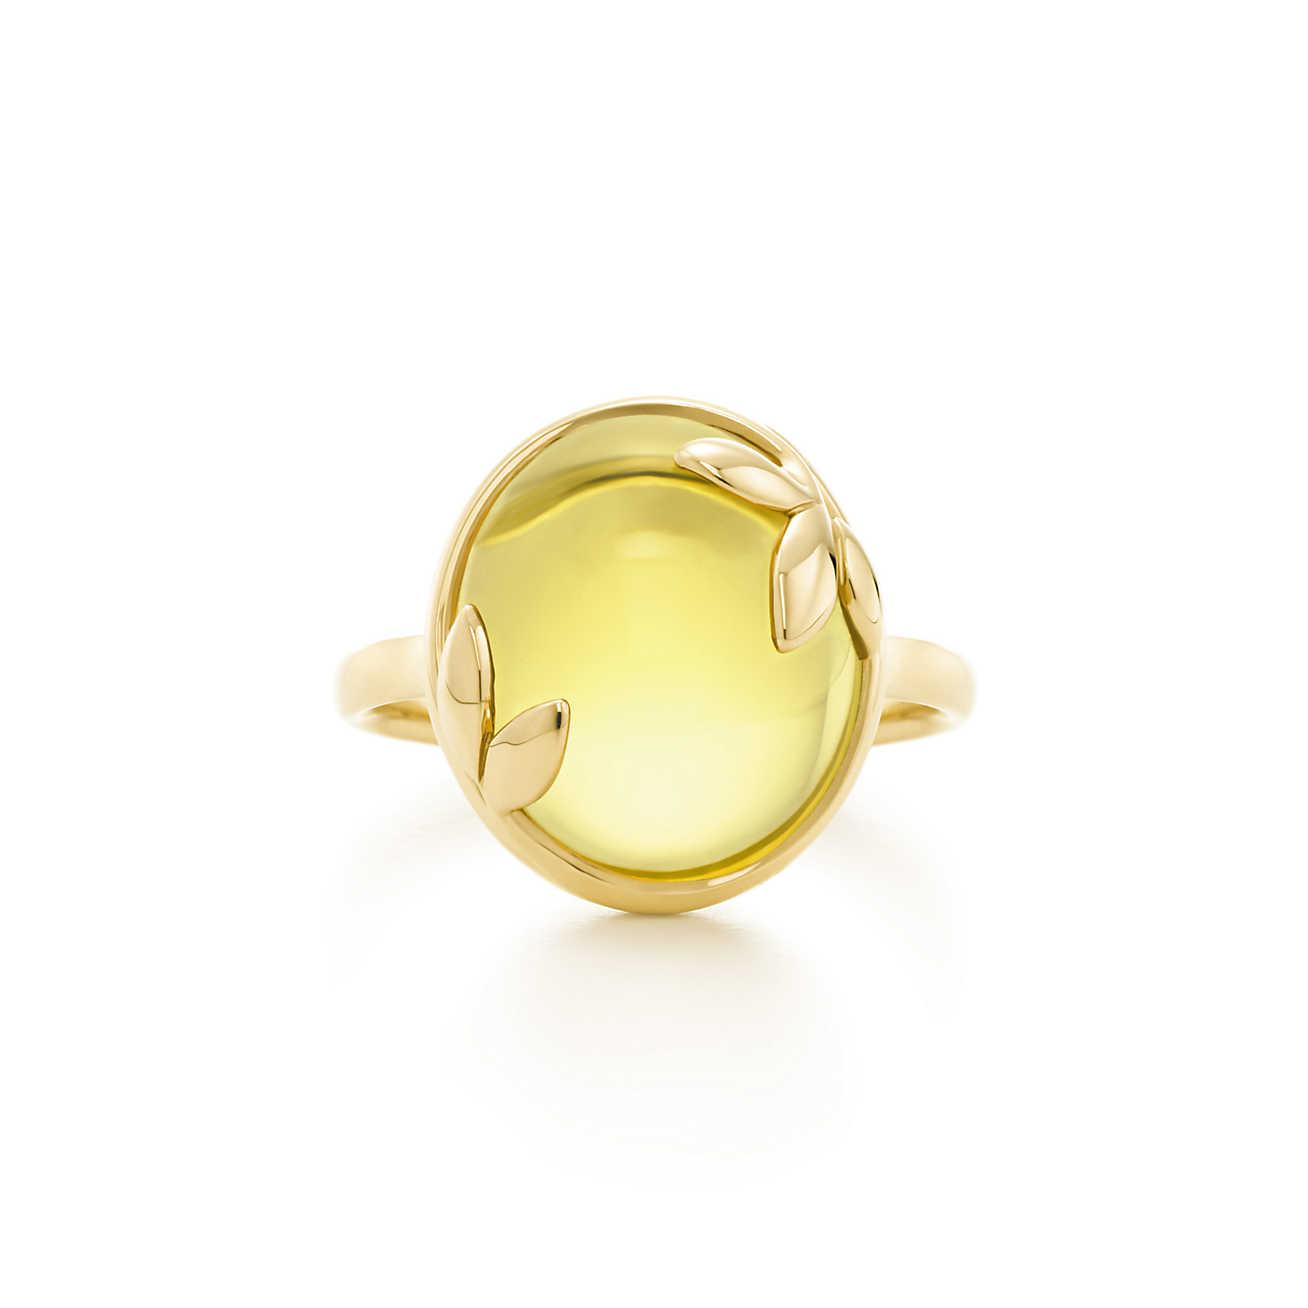 d64416934 Tiffany & Co. Paloma Picasso. Olive Leaf Ring In 18k Gold With A ...